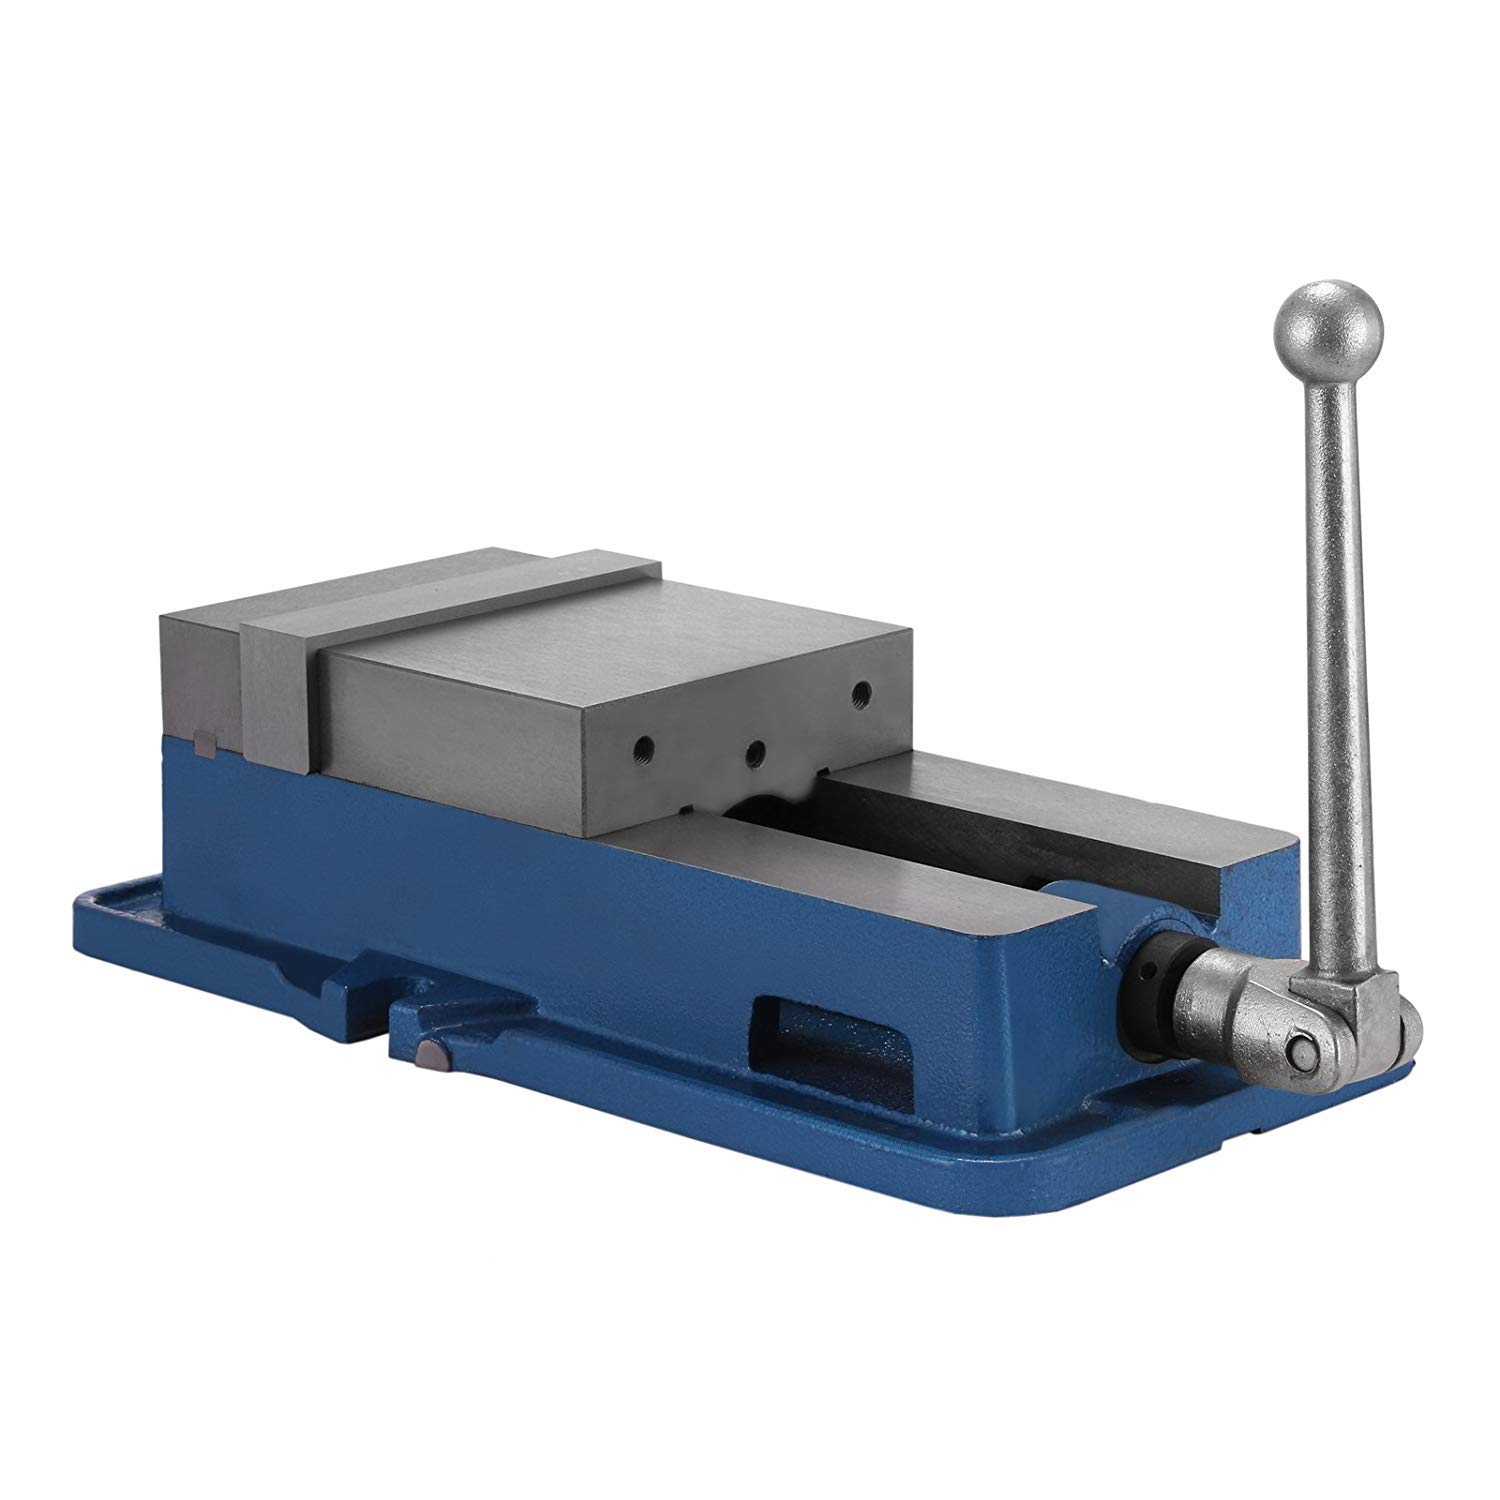 CreatMe 6'' Precision Milling Vise with 6'' Jaw Width Lockdown Vise Bench Clamp